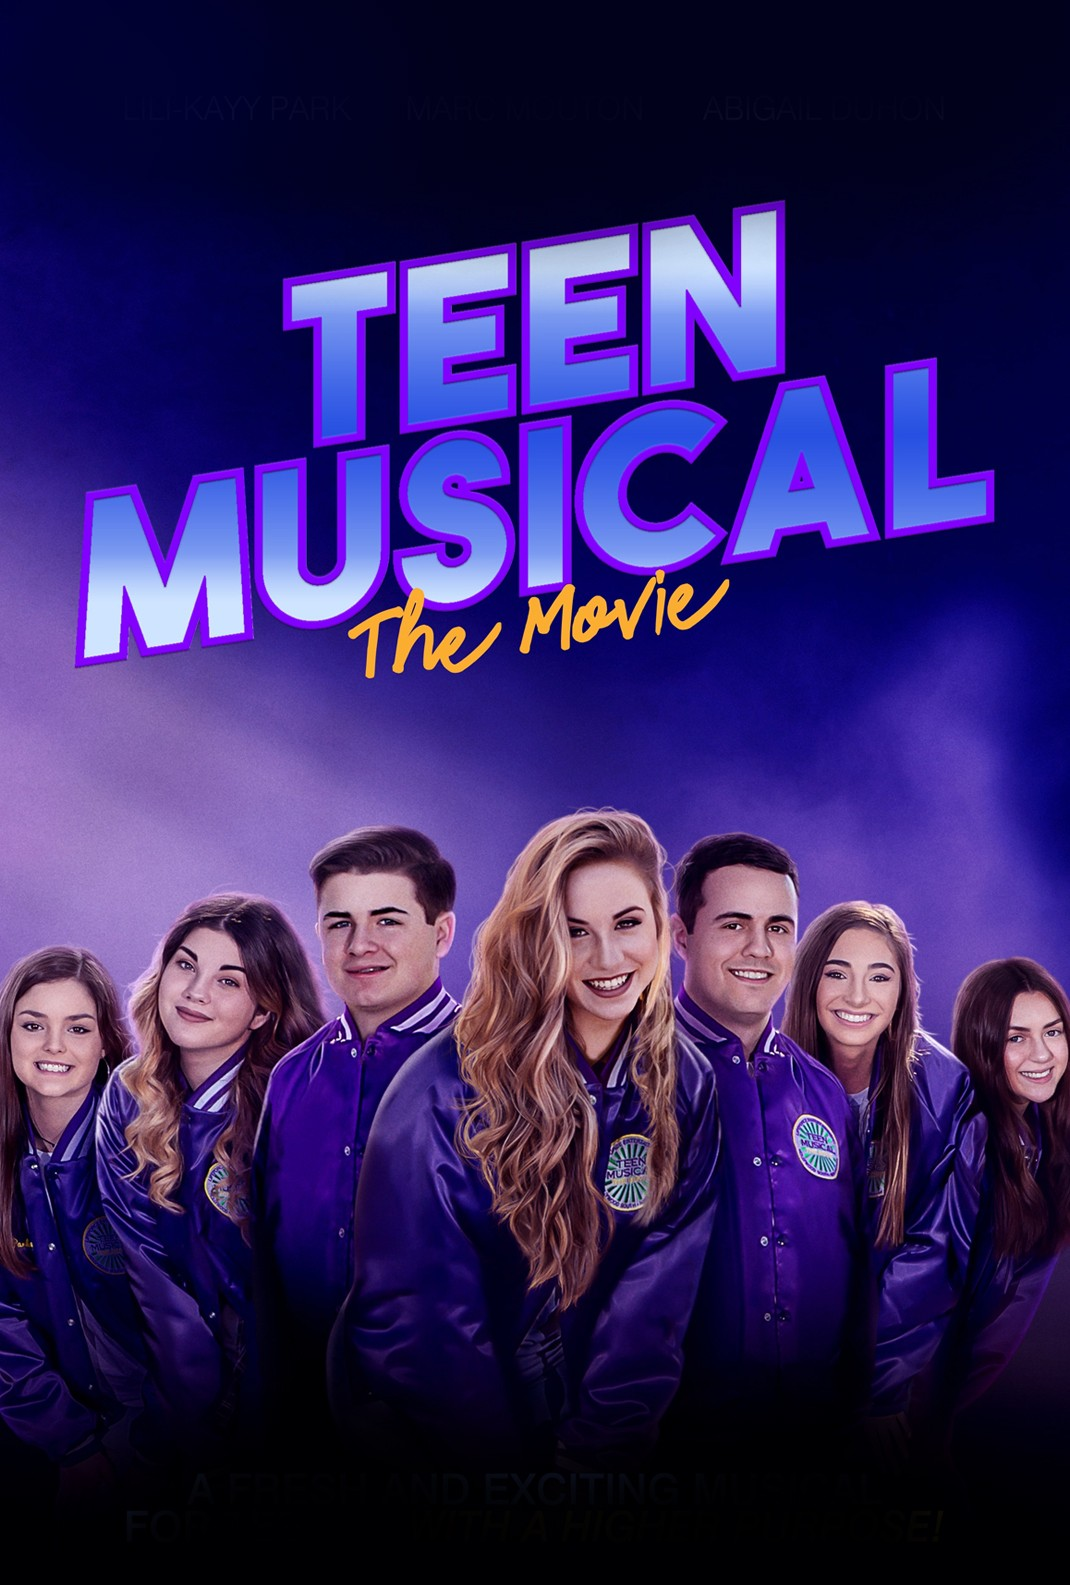 truthtv teen musical the movie 1070 x 1585 poster 01